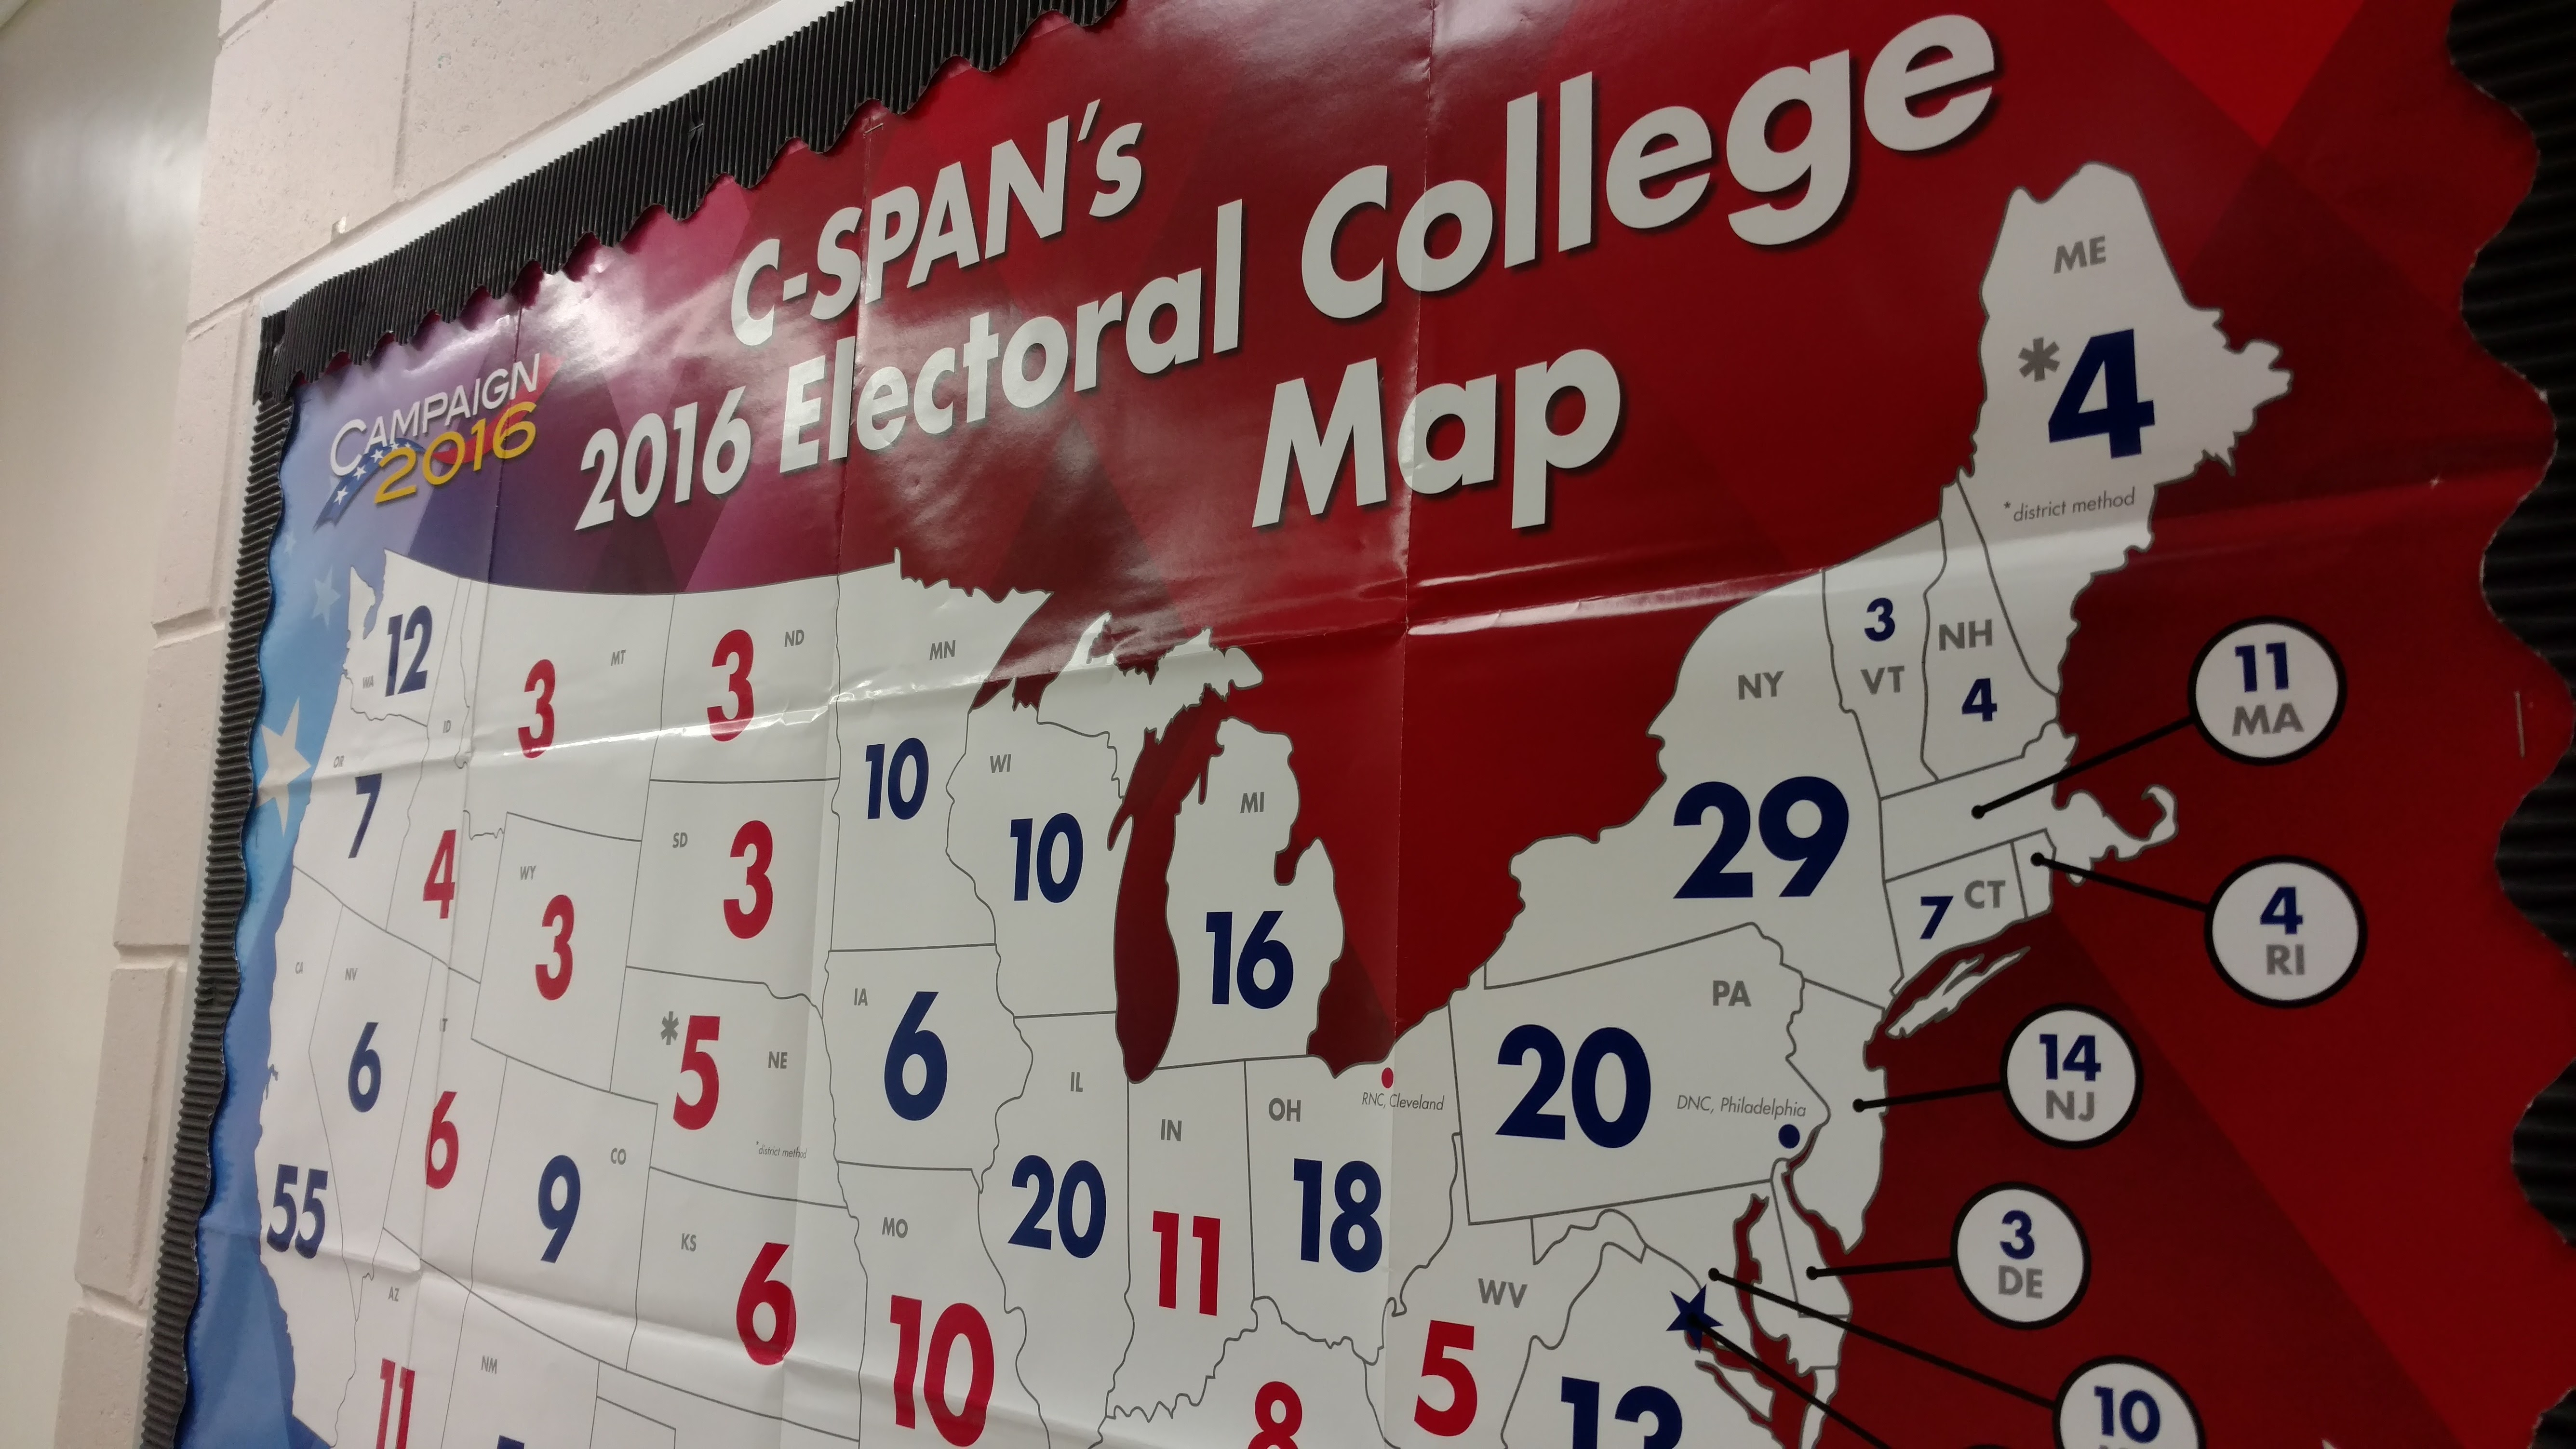 Free PD Workshop on C-SPAN's Classroom Deliberations at the